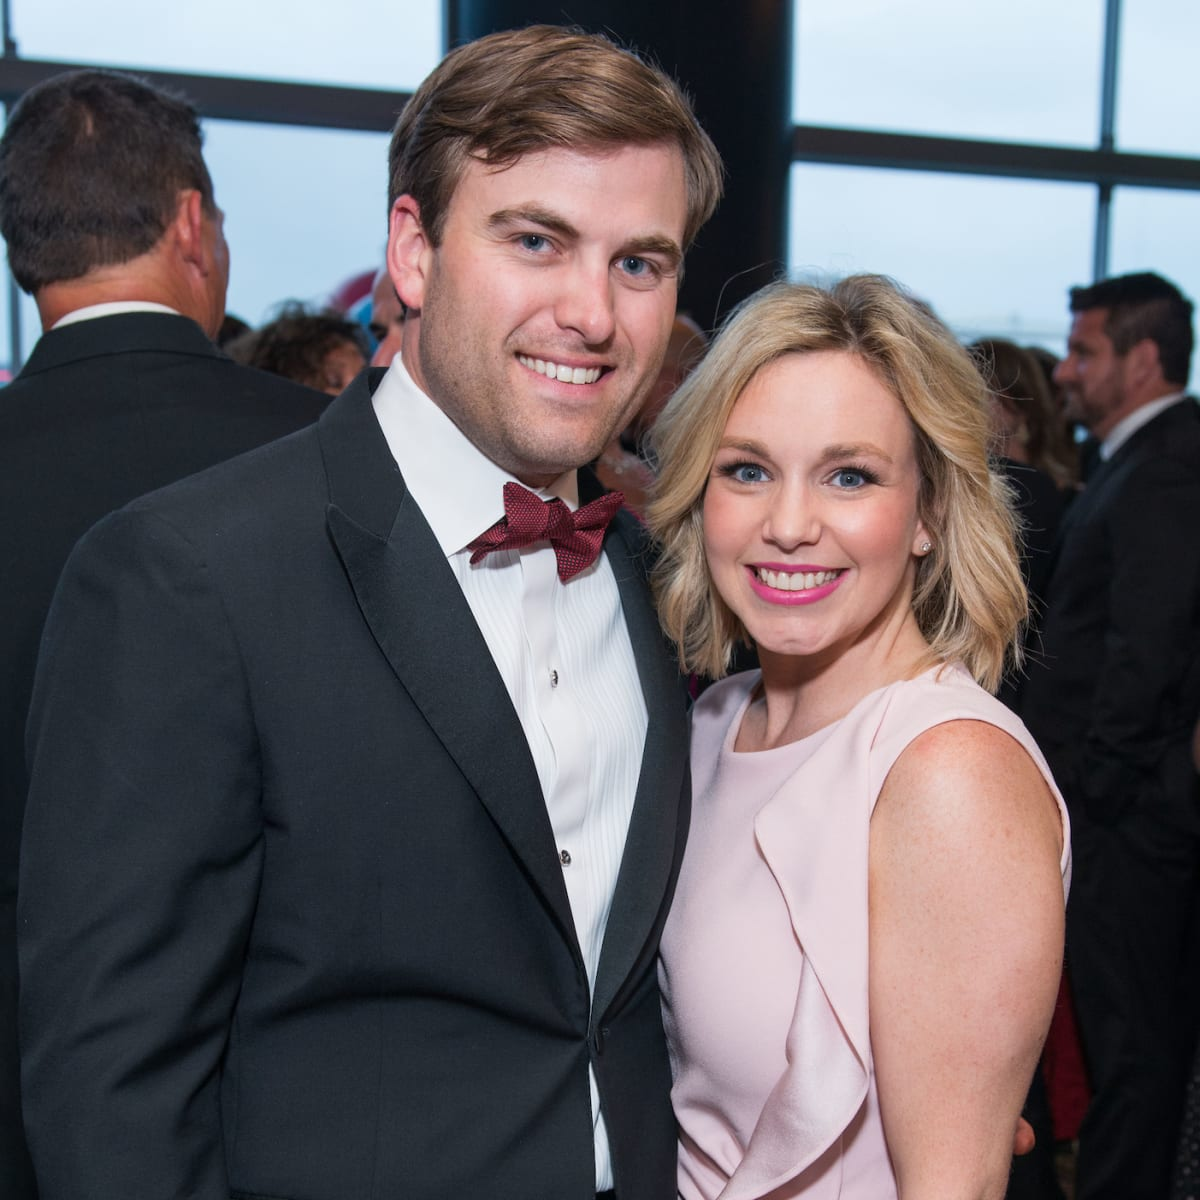 Jason and Stacy Johnson at Memorial Hermann Gala